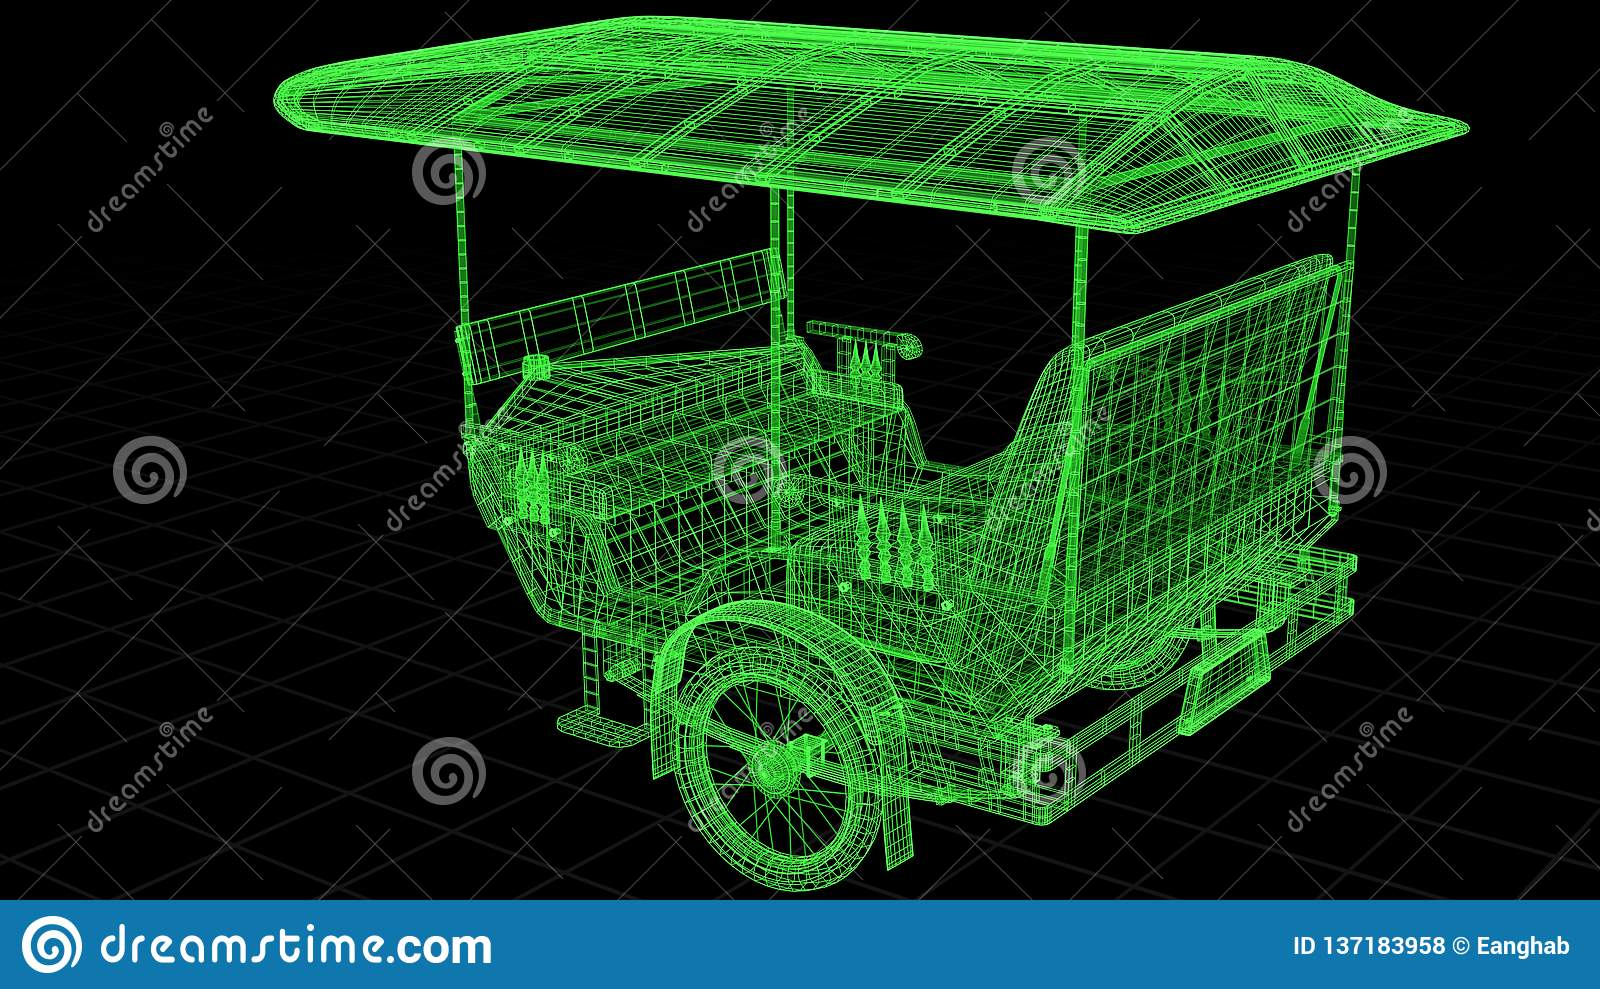 Wire-frame view of Tuk Tuk In Asia fully 3D rendered.